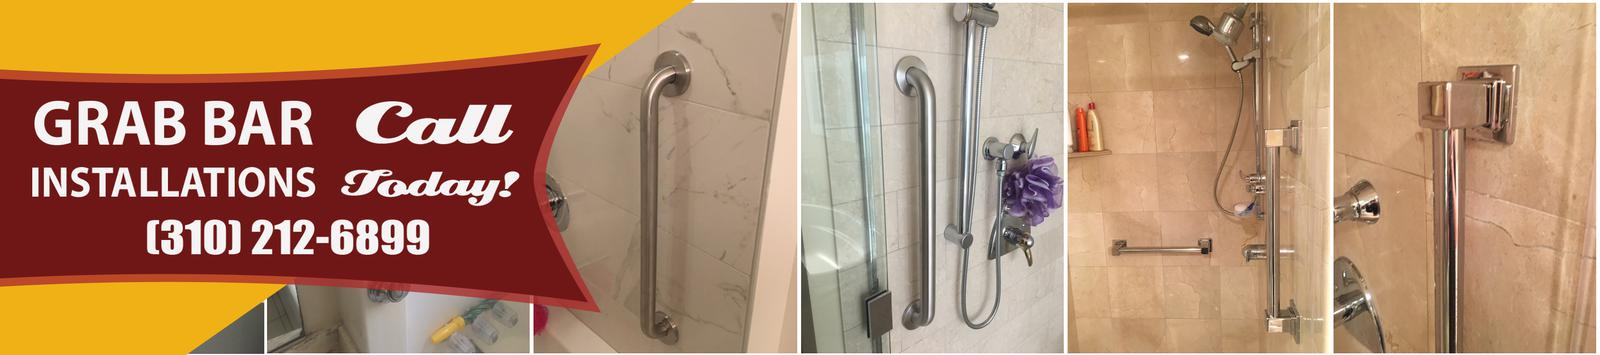 Grab Bar Installations | Integrated Medical Supplies Torrance, CA ...